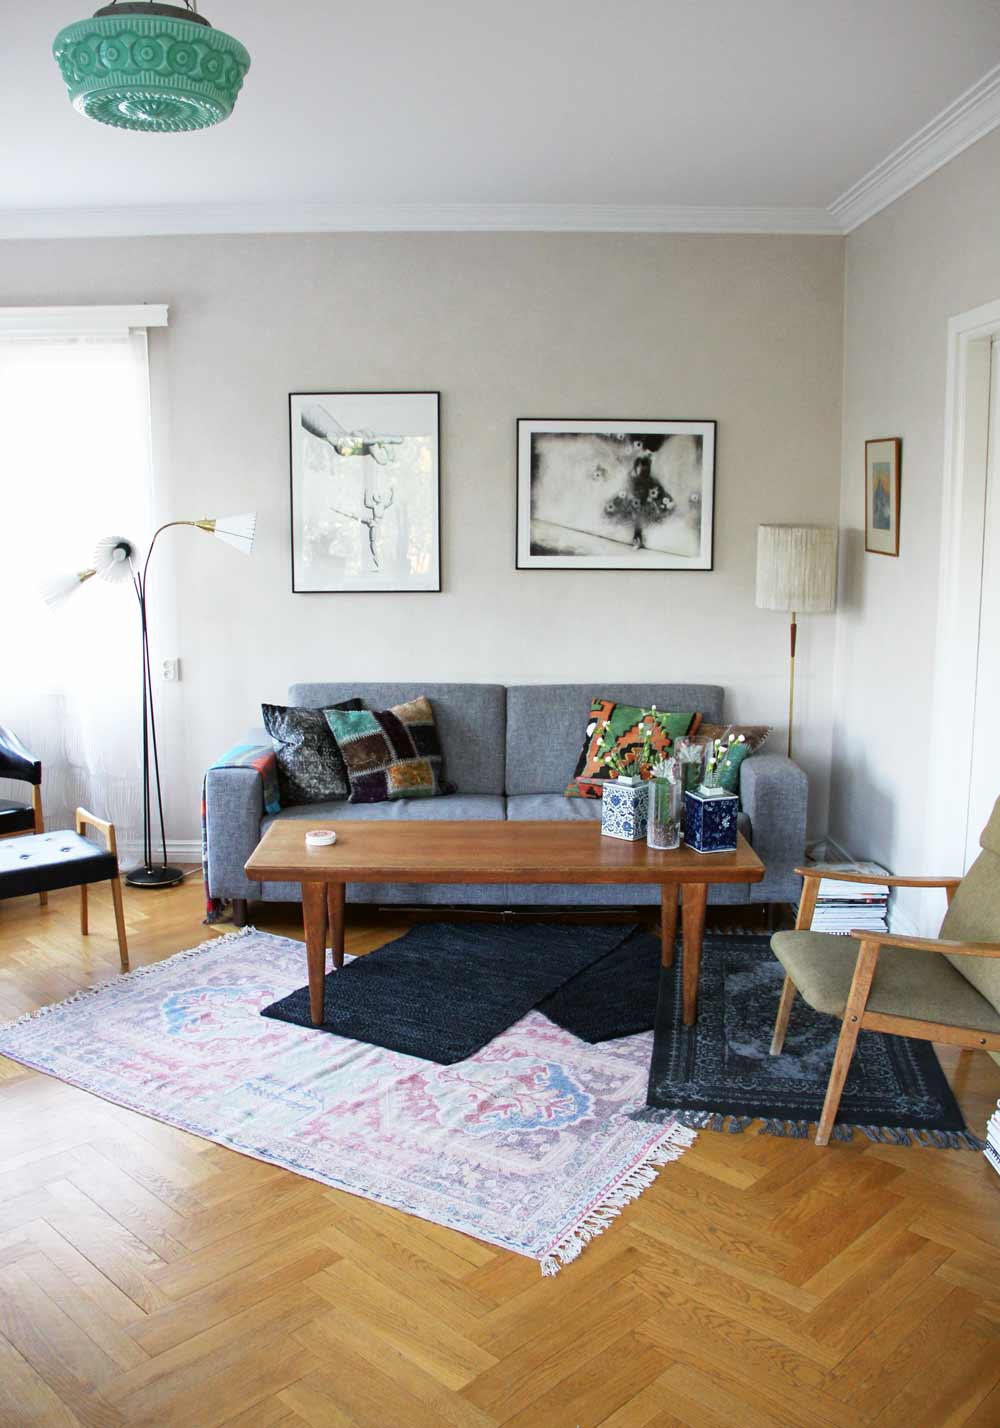 Swedish Living Room A Kurbits Villa Filled With Swedish Folk Art Design Sponge